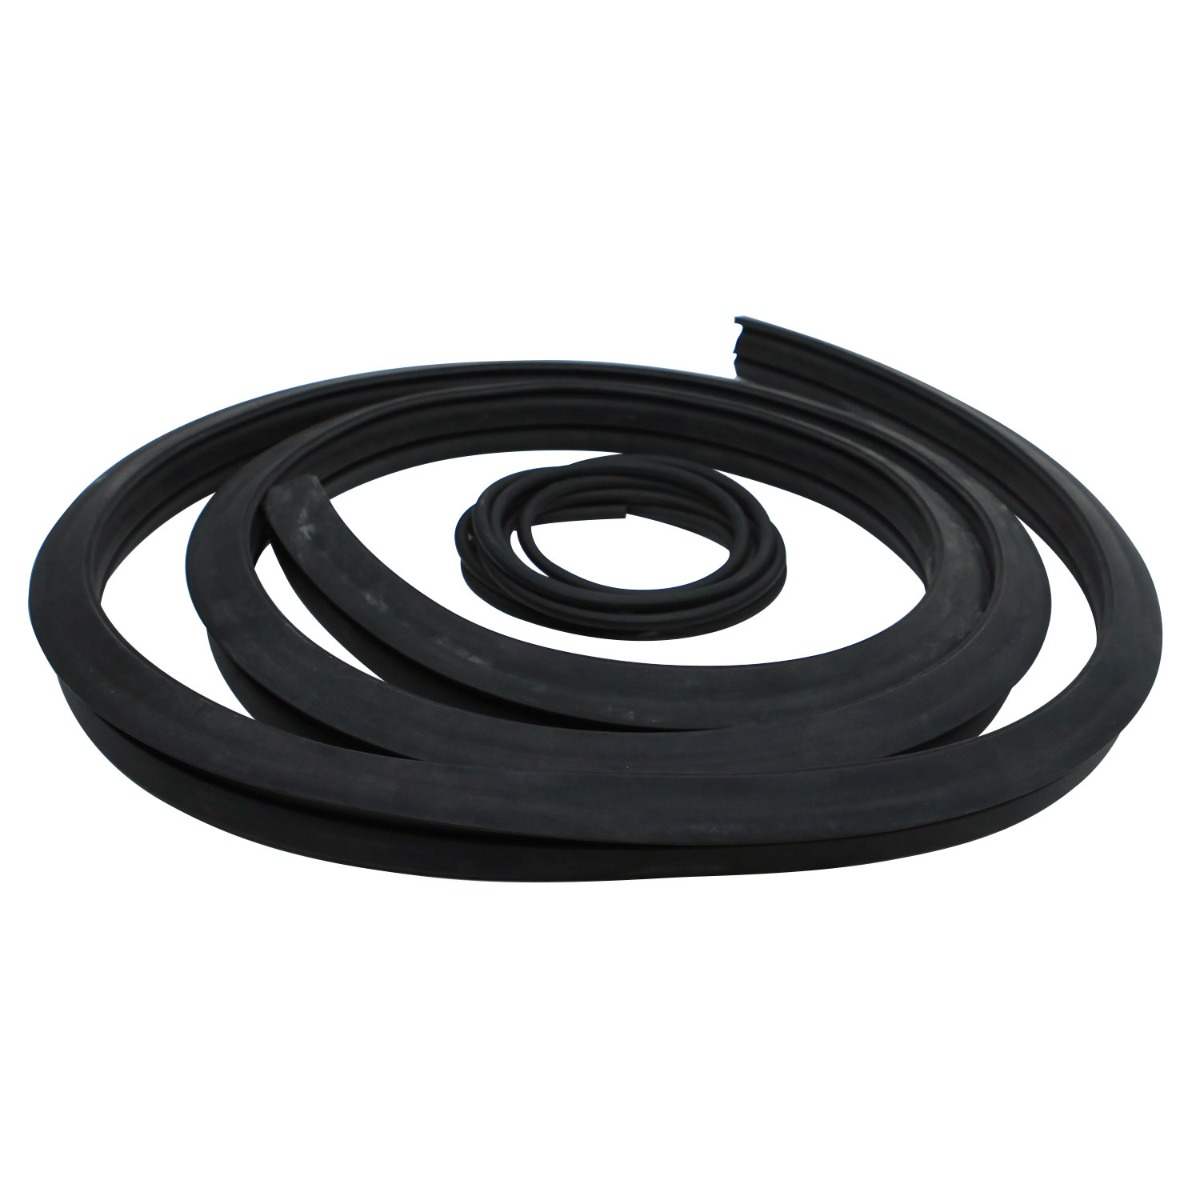 Rubber Seal and Cord 6513152 Compatible with Bobcat Skid Steer Loader A220 A300 S100 S130 S150 S160 S175 S185 S205 S220 S250 S300 S330 S70 T110 T140 T180 T190 T200 T250 T300 T320